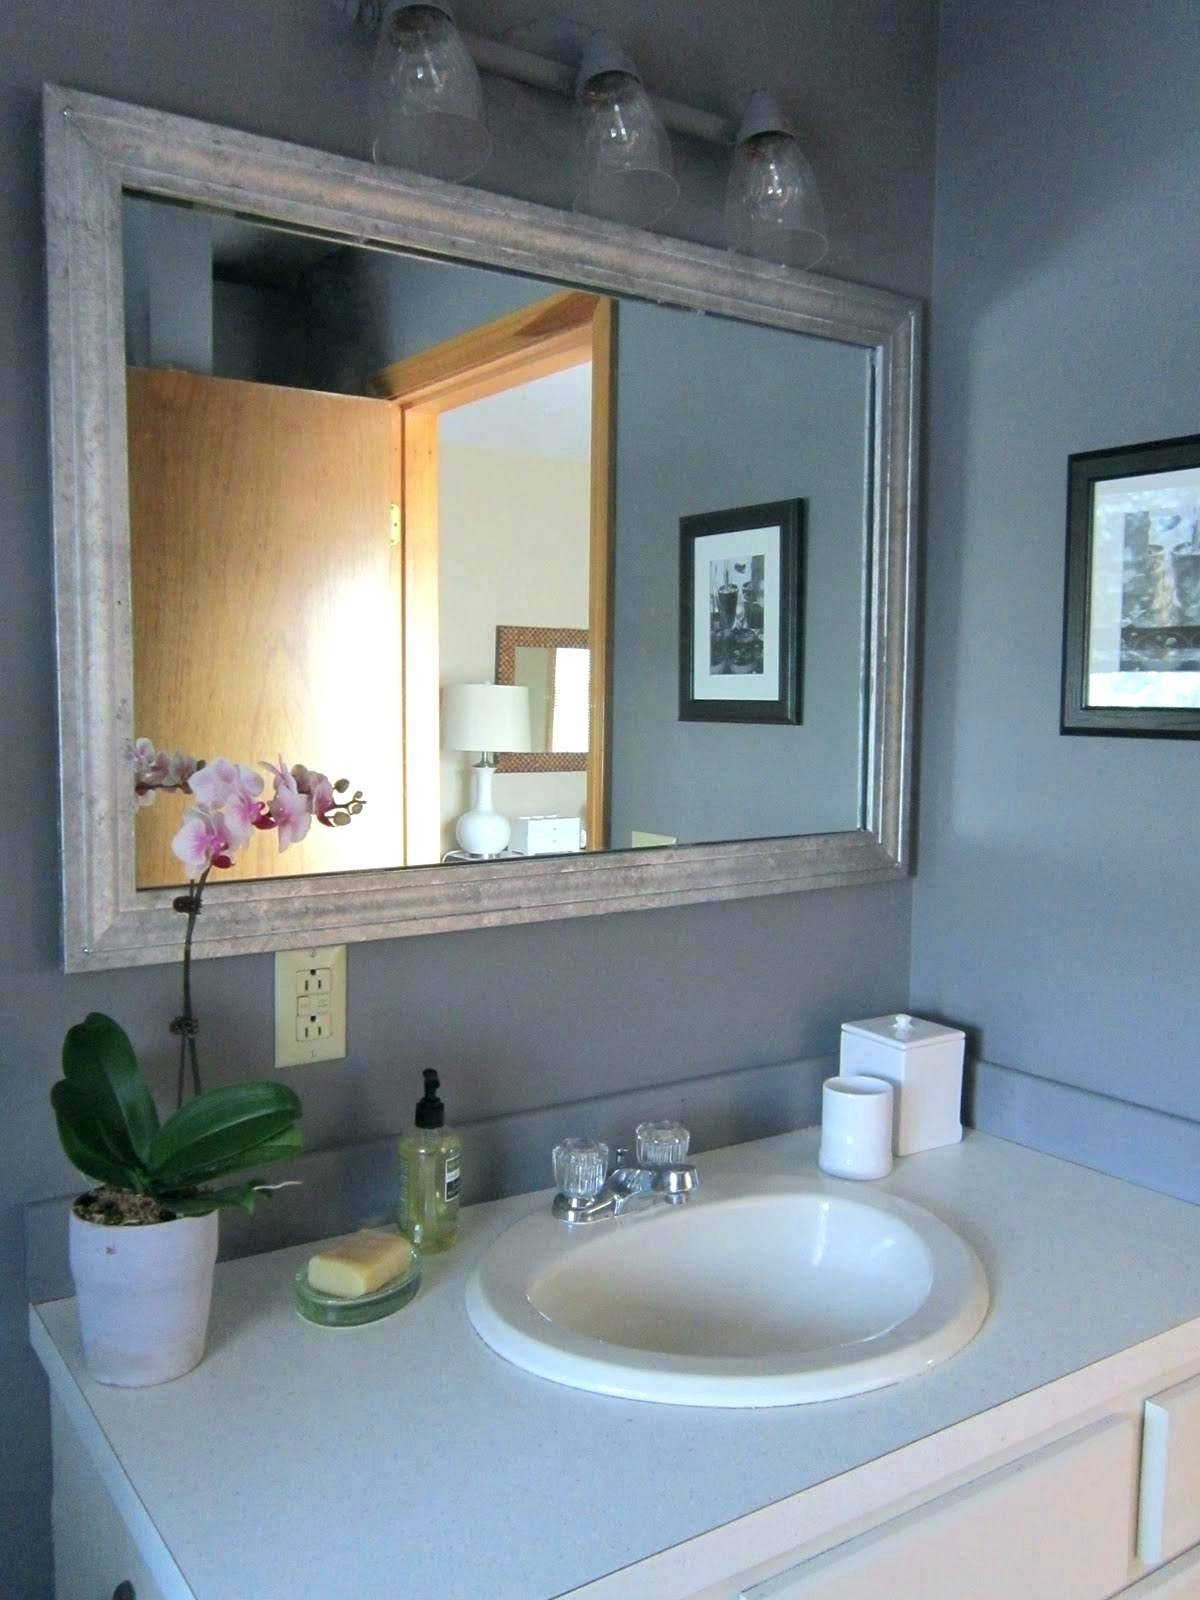 Extra Large Wall Mirrors – Amlvideo for Large Art Deco Wall Mirrors (Image 15 of 25)